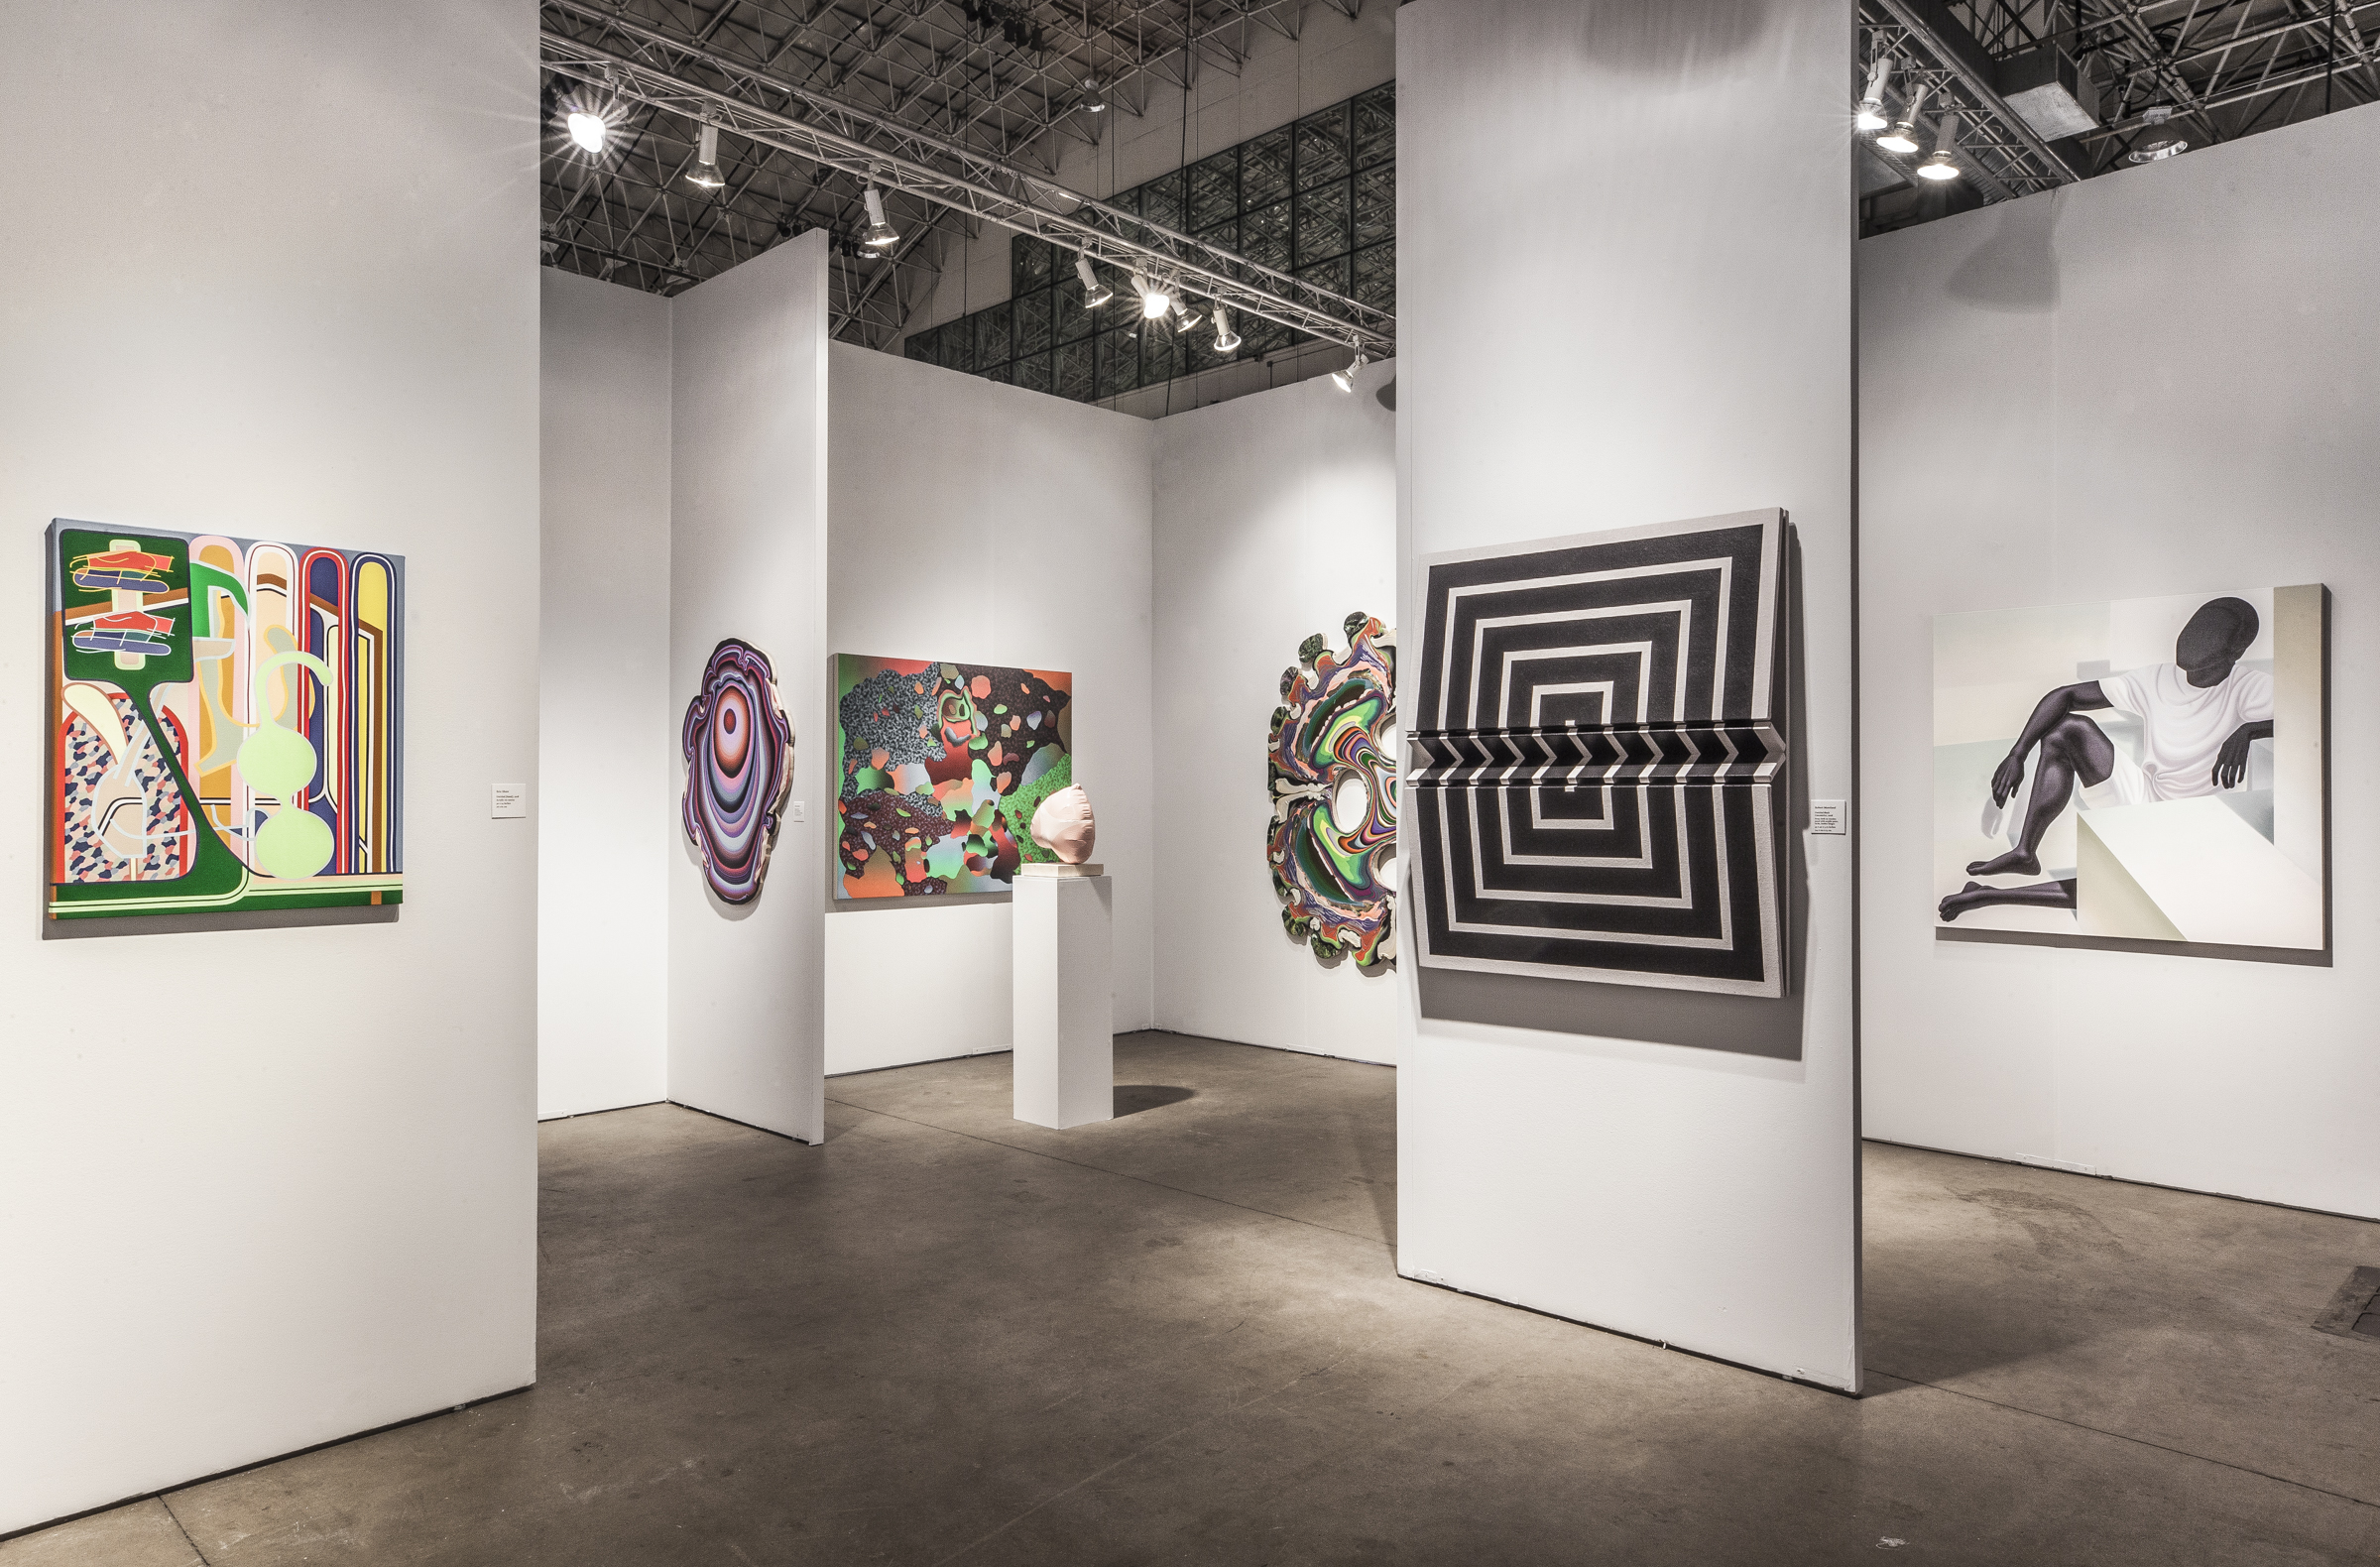 Installation view of The Hole, NYC booth at EXPO Chicago 2018. Courtesy of The Hole, NYC.